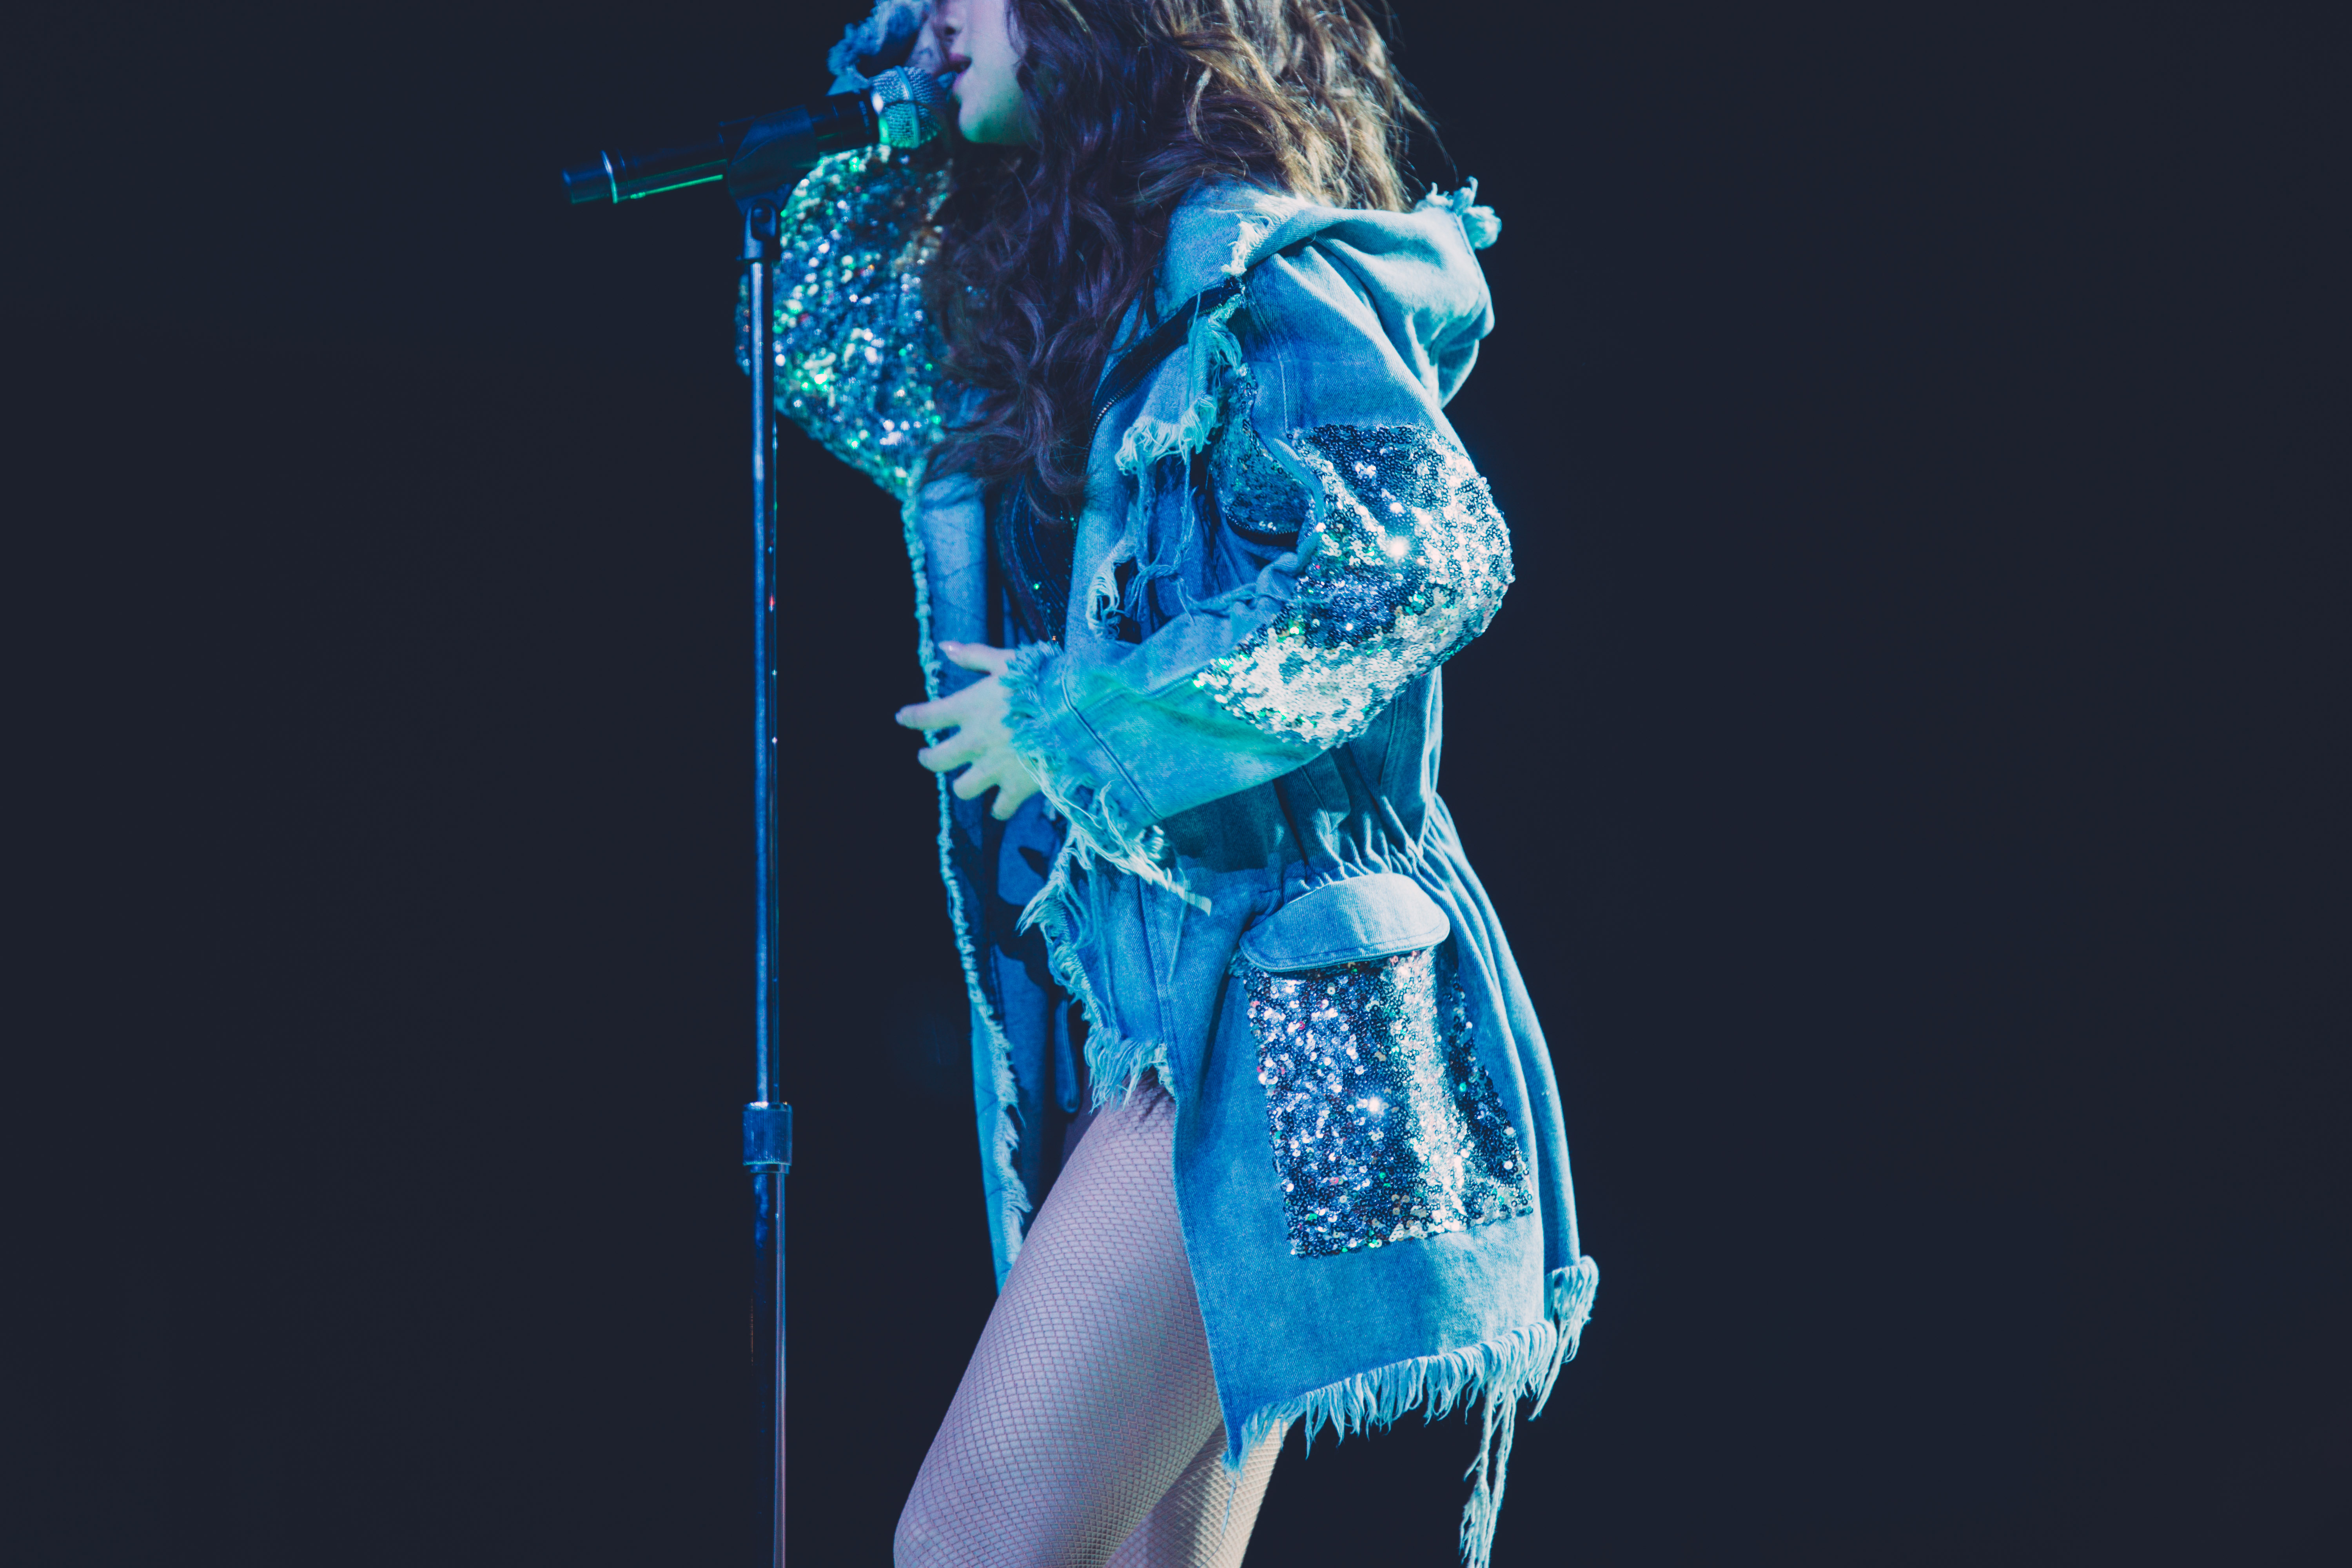 Selena Gomez performing during her Revival Tour by Izak Rappaport